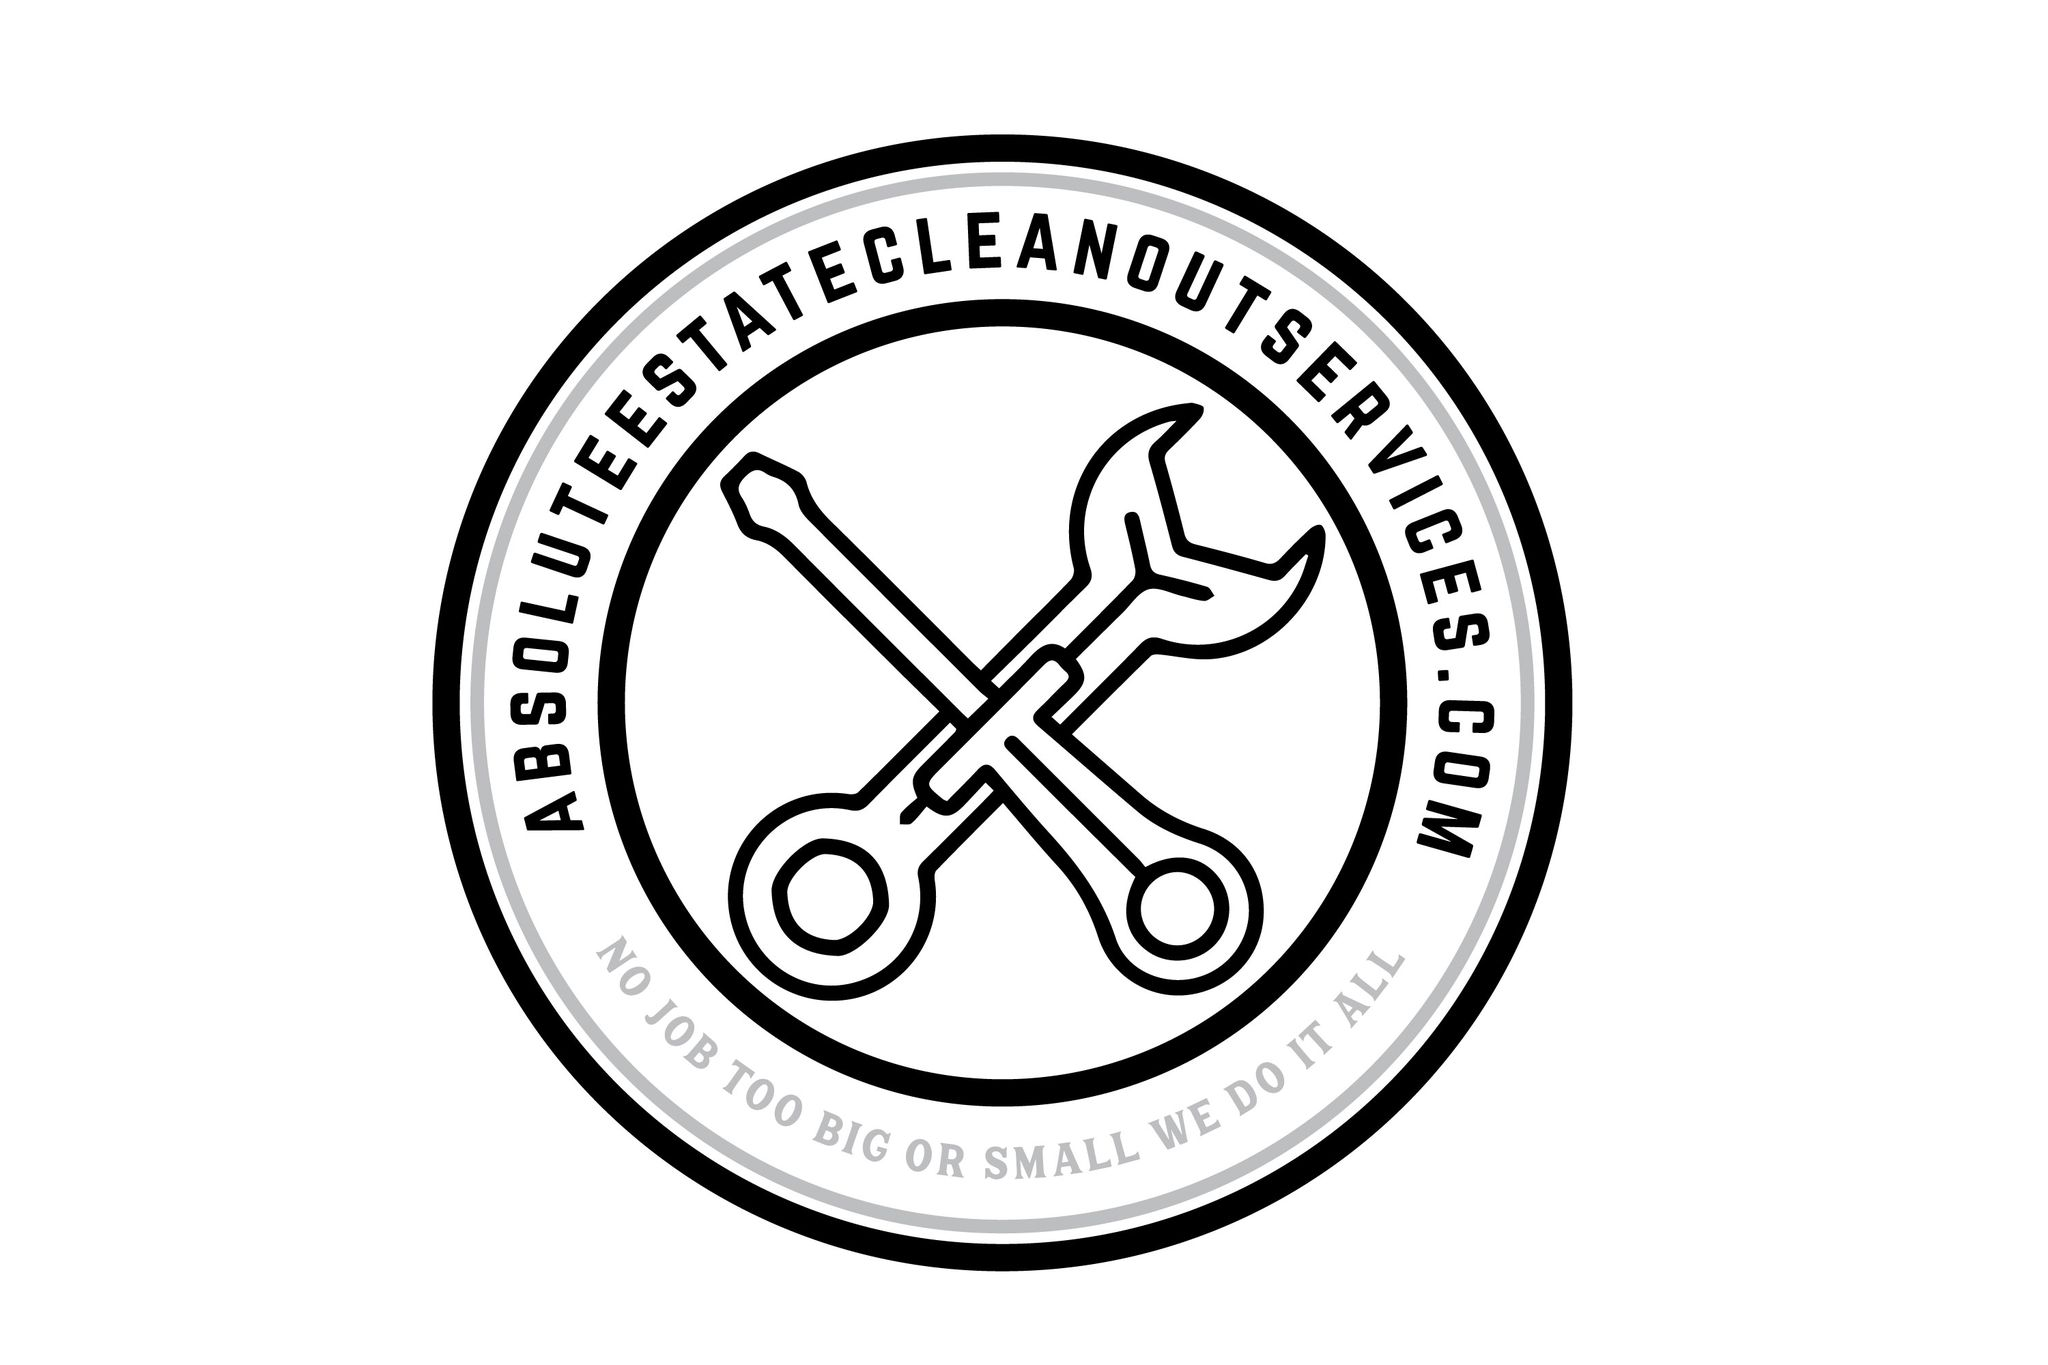 absoluteestatecleanoutservices.com